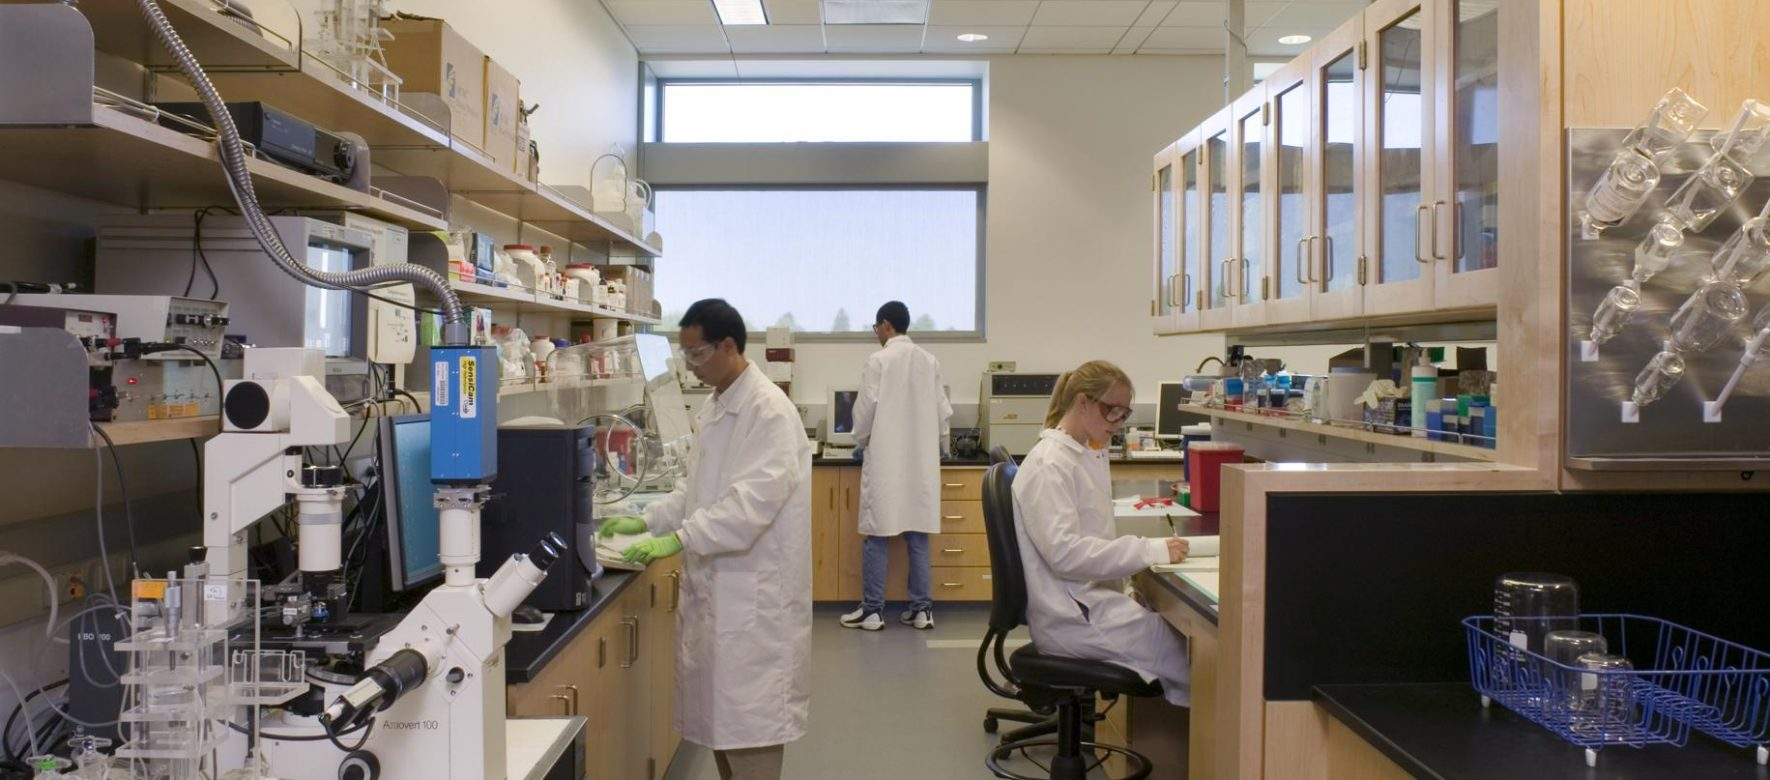 Israel and France are joining their R&D in Biomedical technology through the Eureka network 2